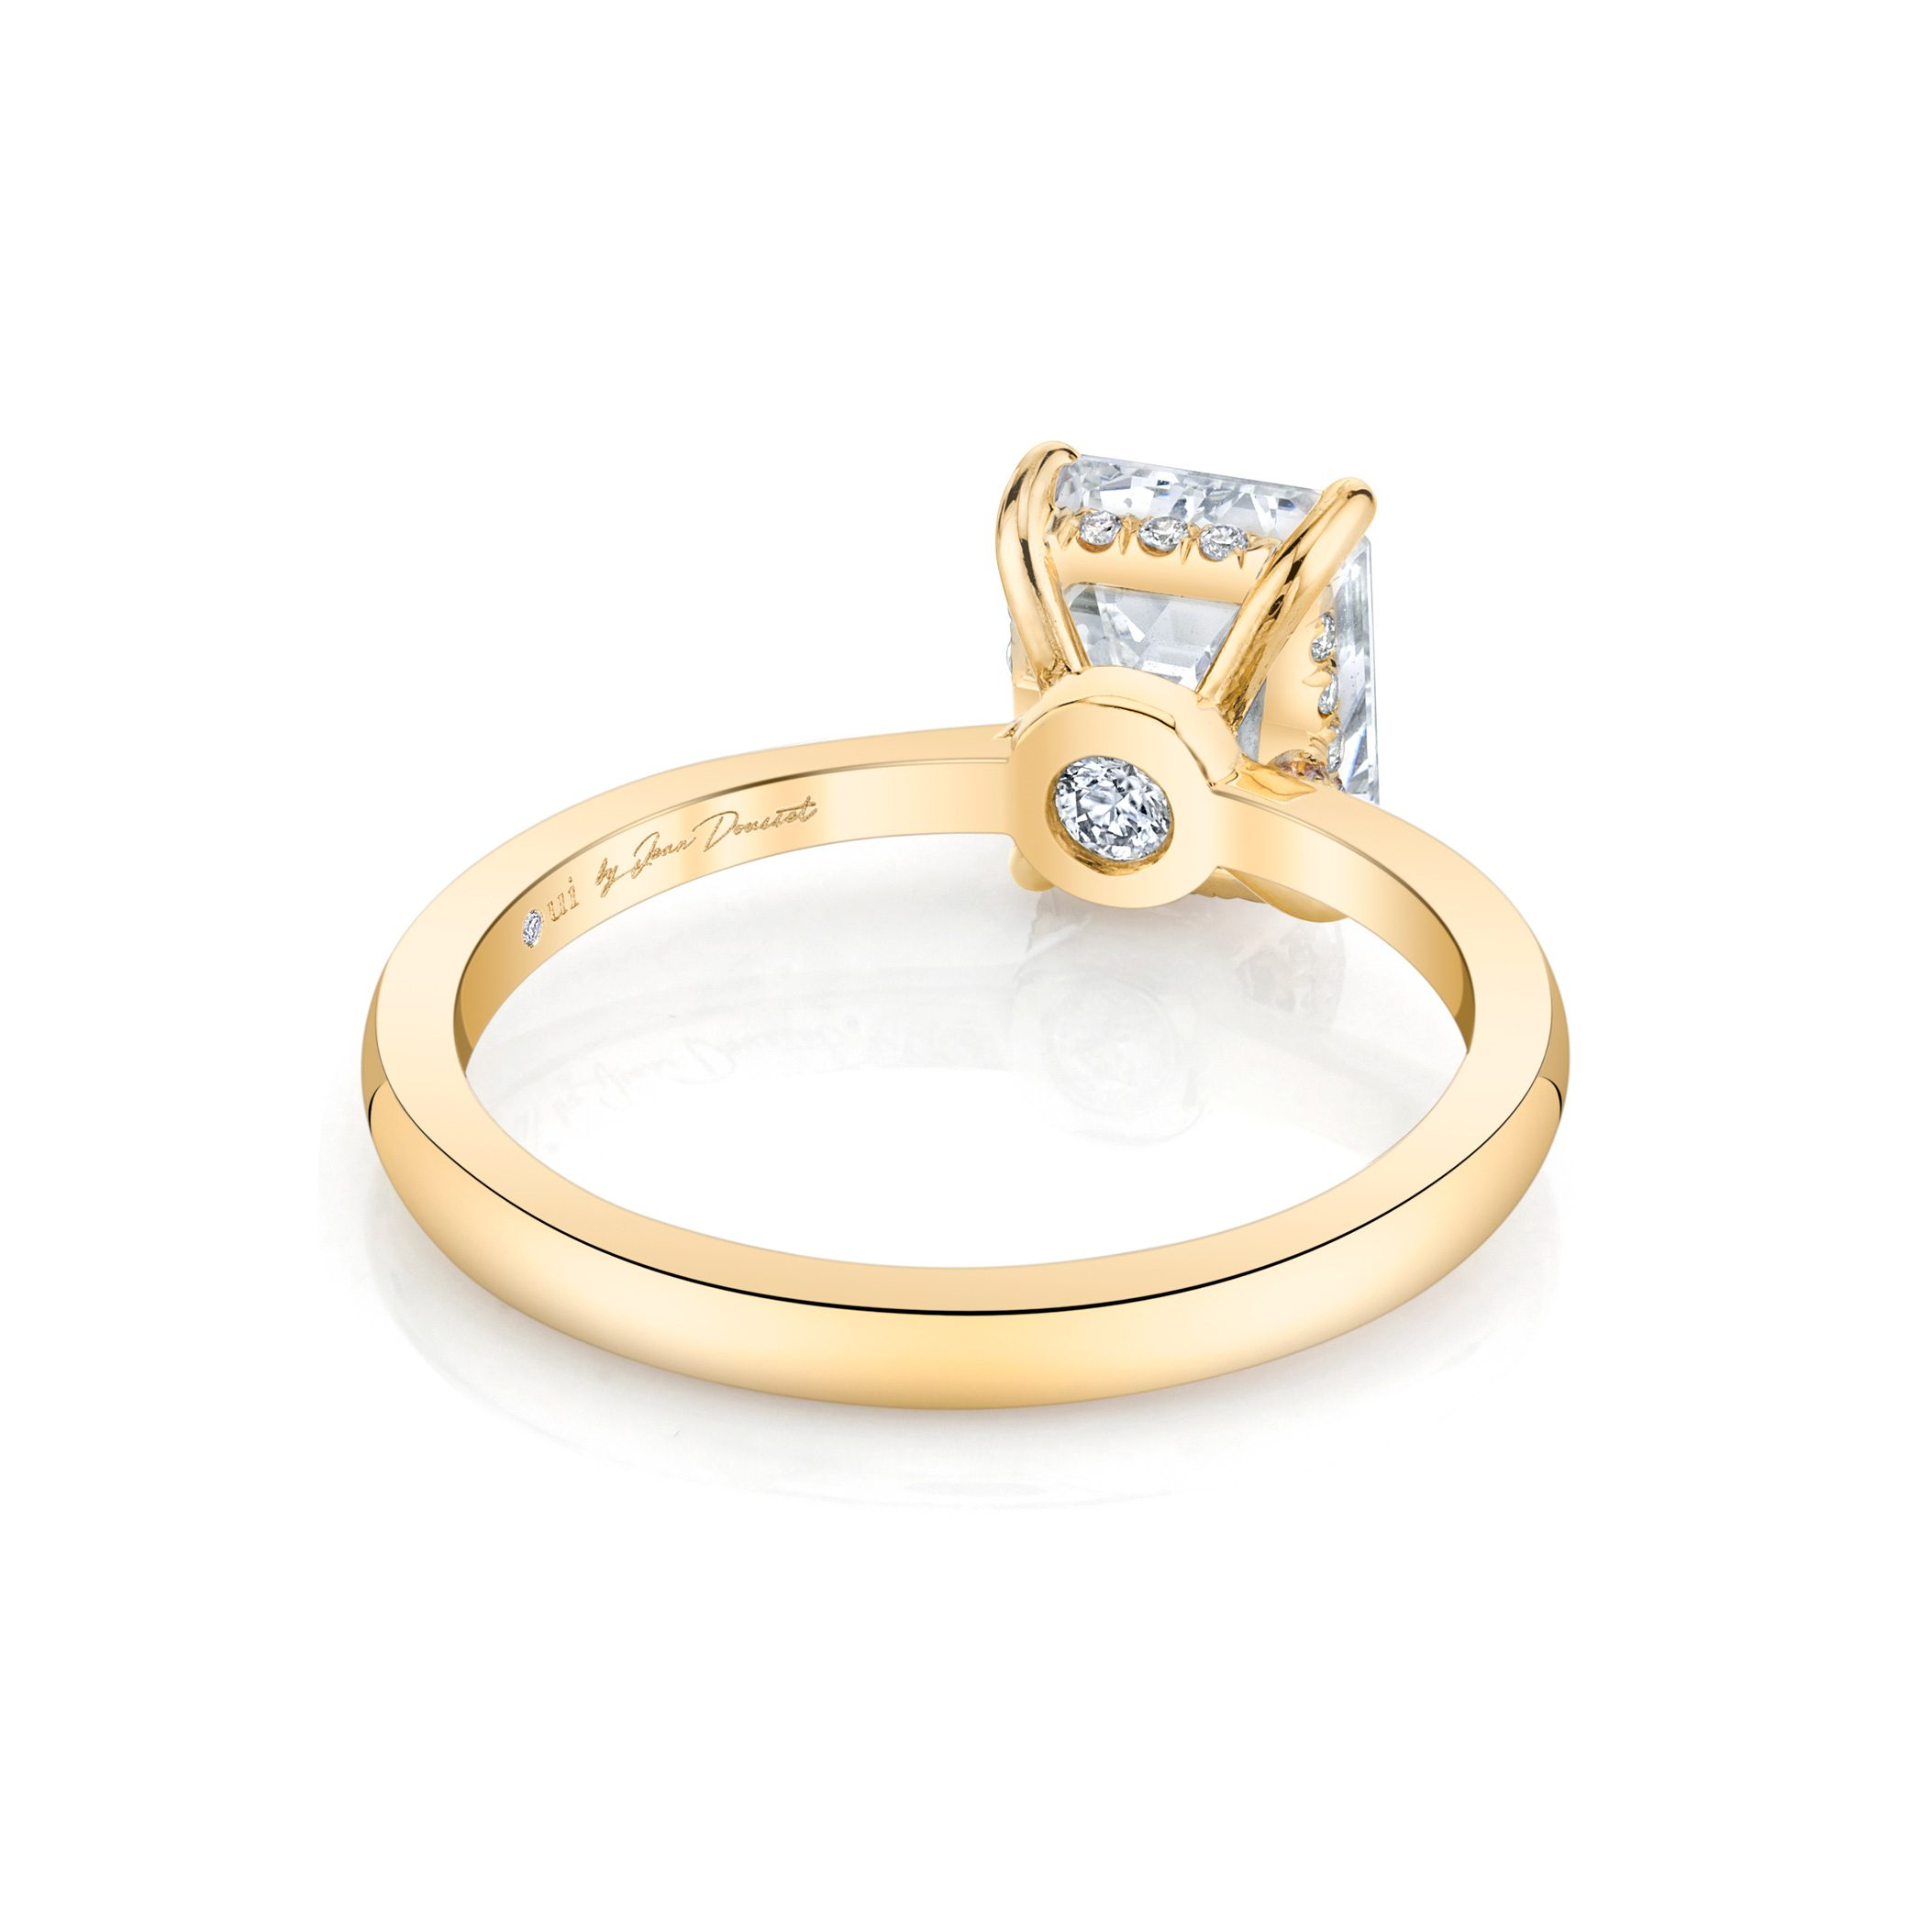 Colette Emerald Solitaire Engagement Ring with a sold band in 18k Yellow Gold Back Shot by Oui by Jean Dousset